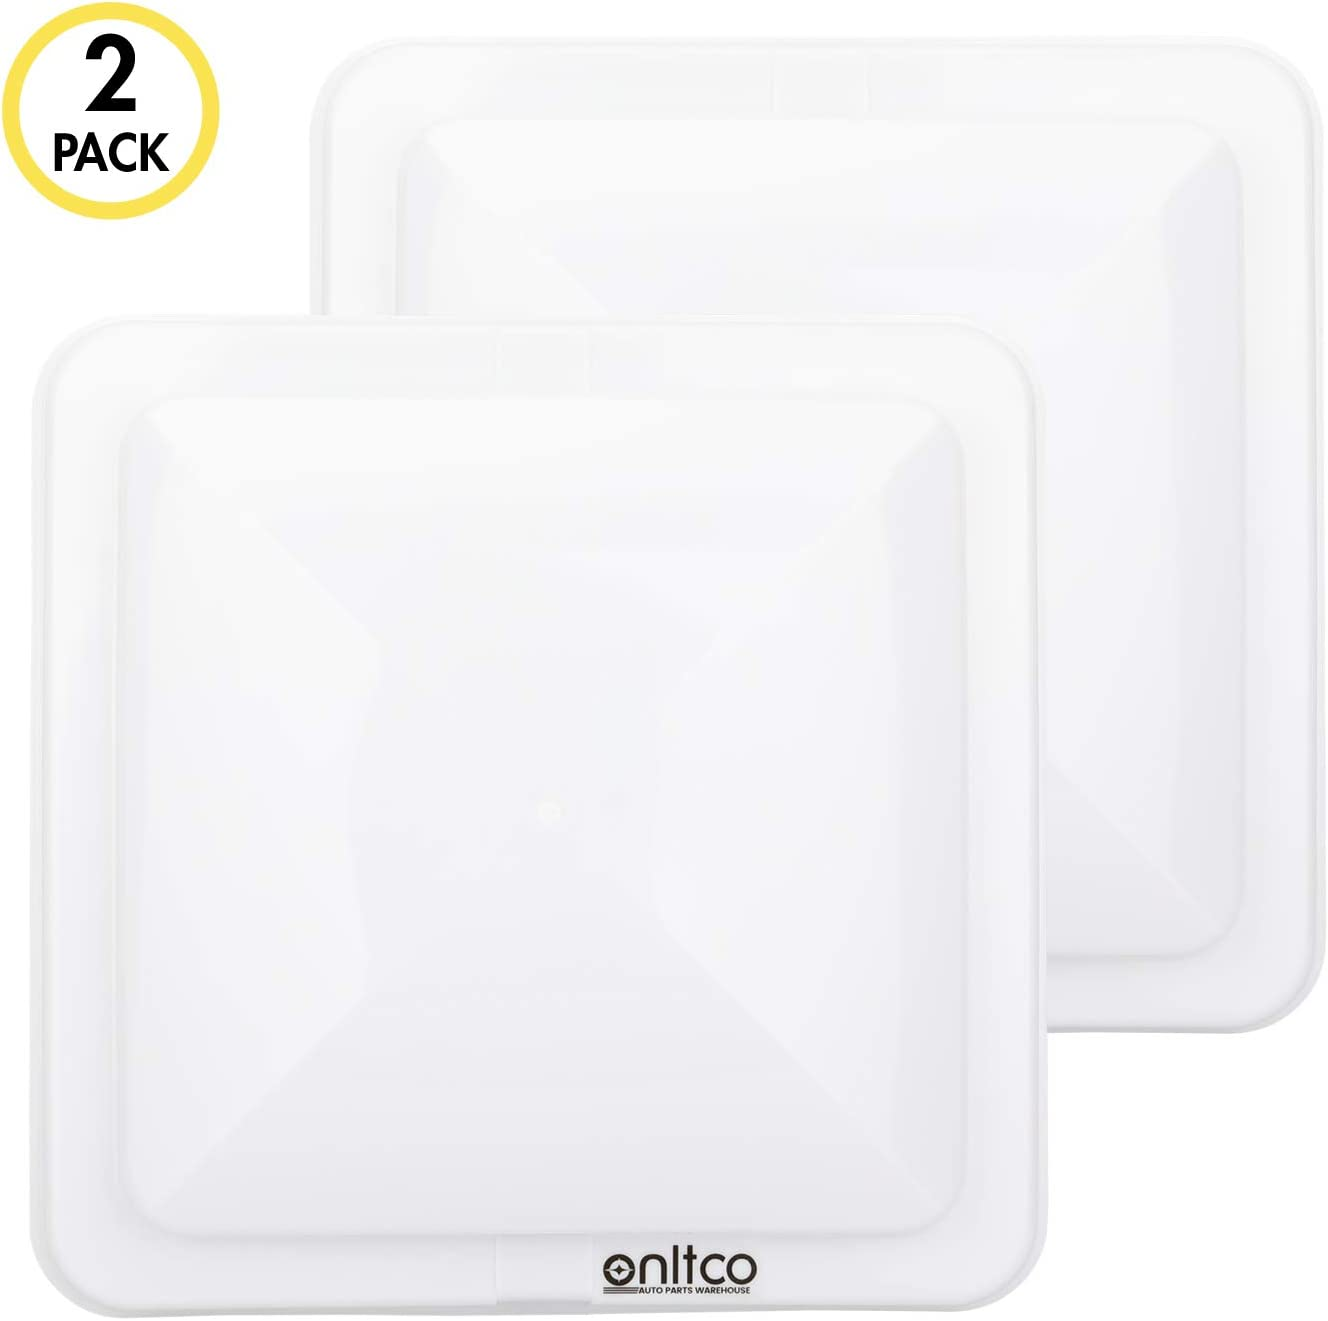 ONLTCO Rv Roof Vent Cover Replacement 14 x 14, White Vent Lid for Camper Trailer Motorhome Bathroom, 2 Pack